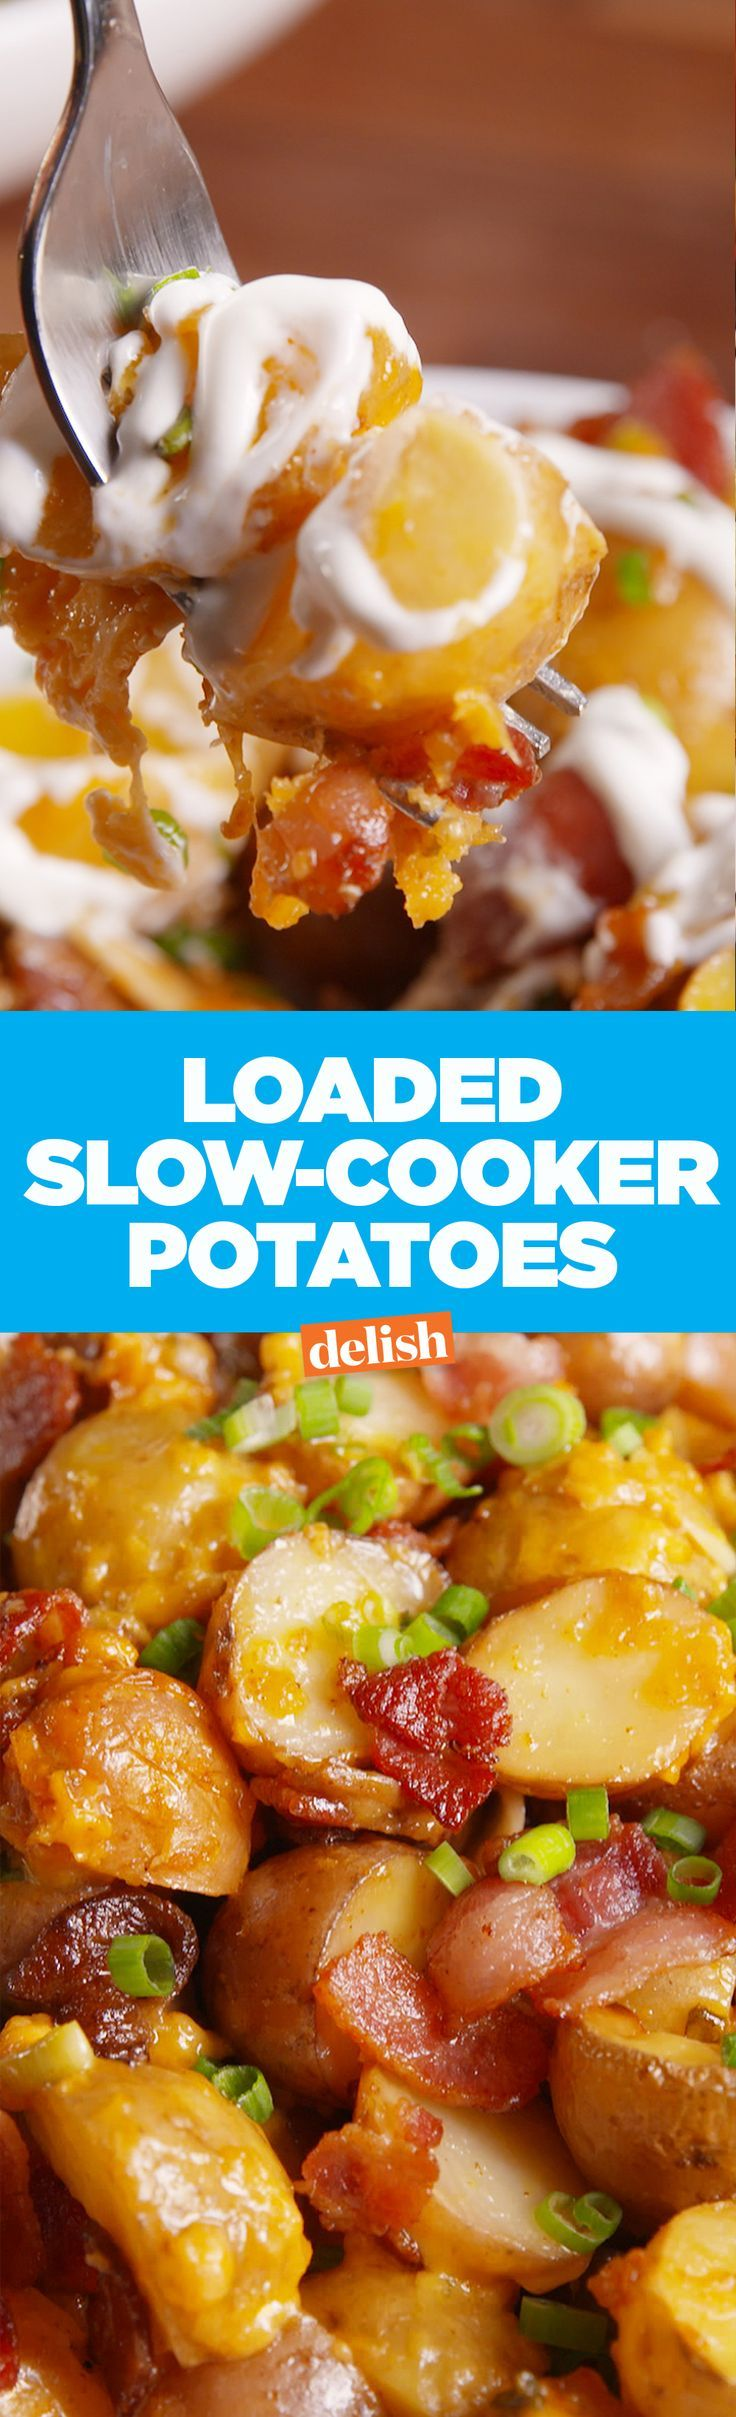 Loaded slow-cooker potatoes are the perfect food for when you don't have time to cook. Get the recipe on http://Delish.com.